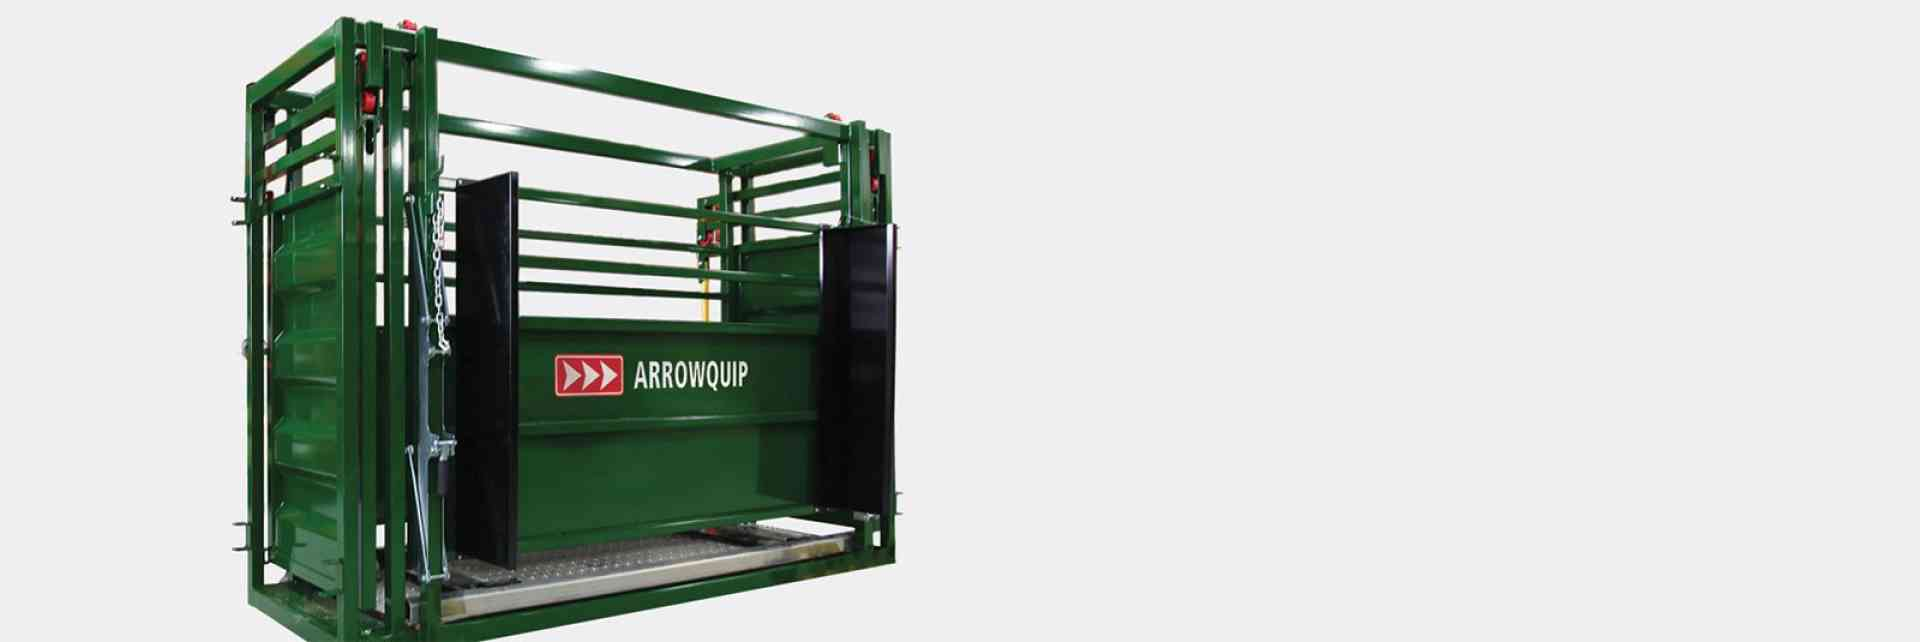 Cattle Scale Crate | Arrowquip Cattle Equipment